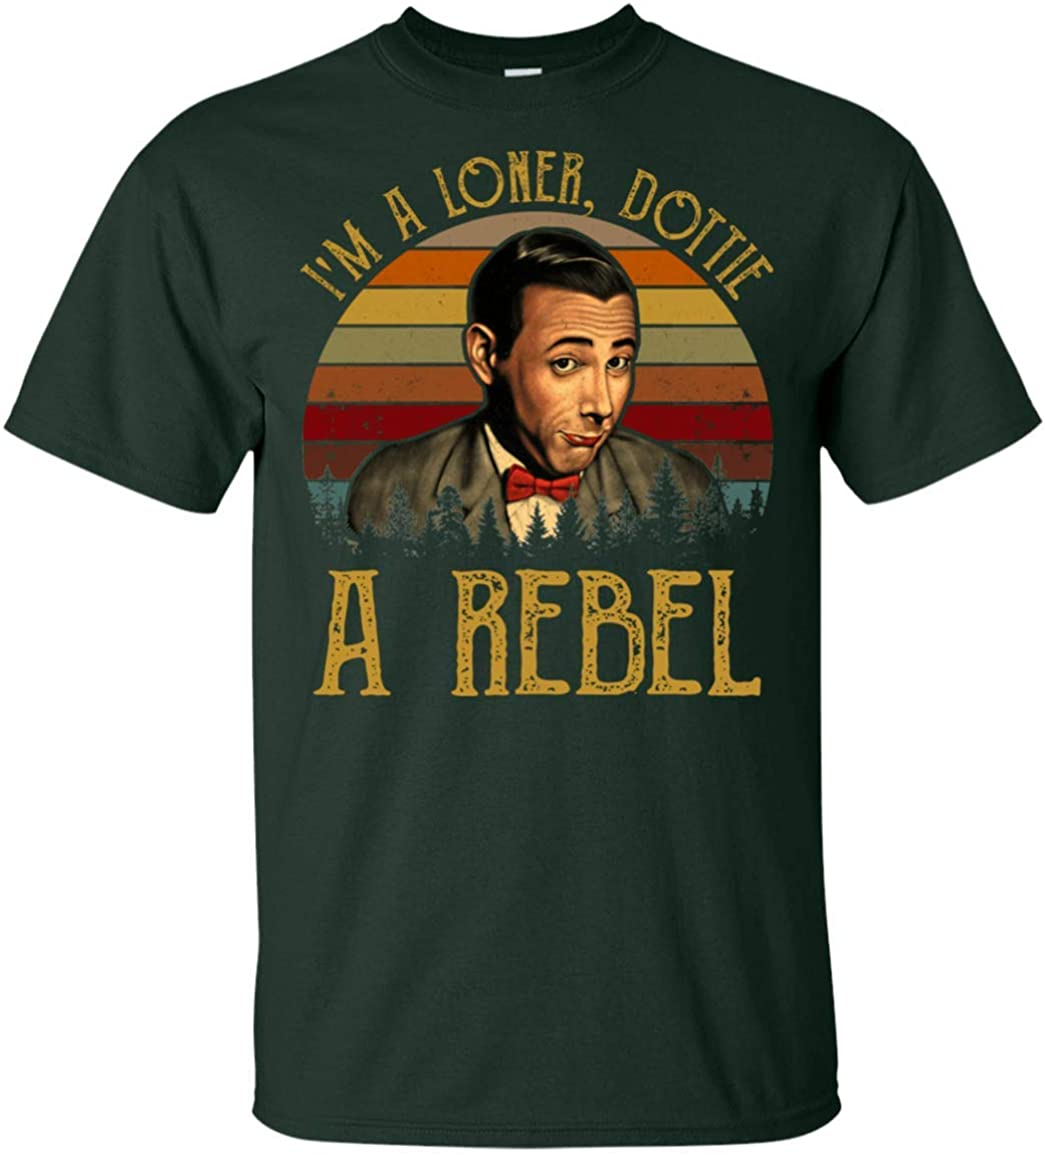 Im A Loner Dottie A Rebel T-Shirt -Funny Movie Shirt